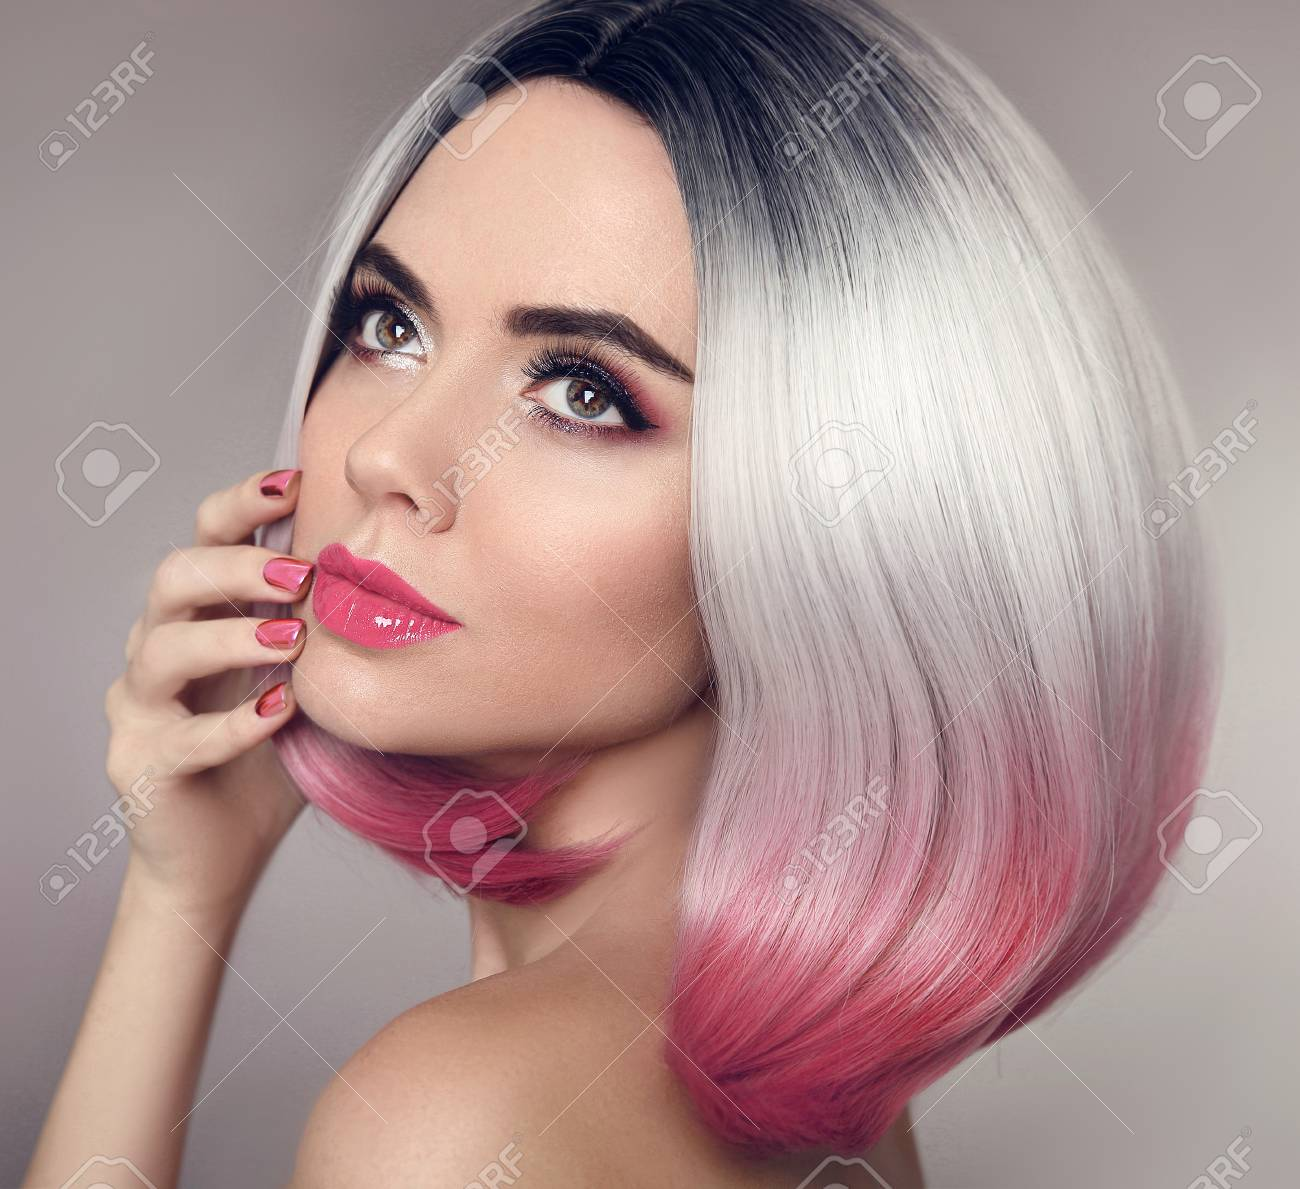 Colored Ombre Bob Hair Extensions Manicure Nails Beauty Makeup